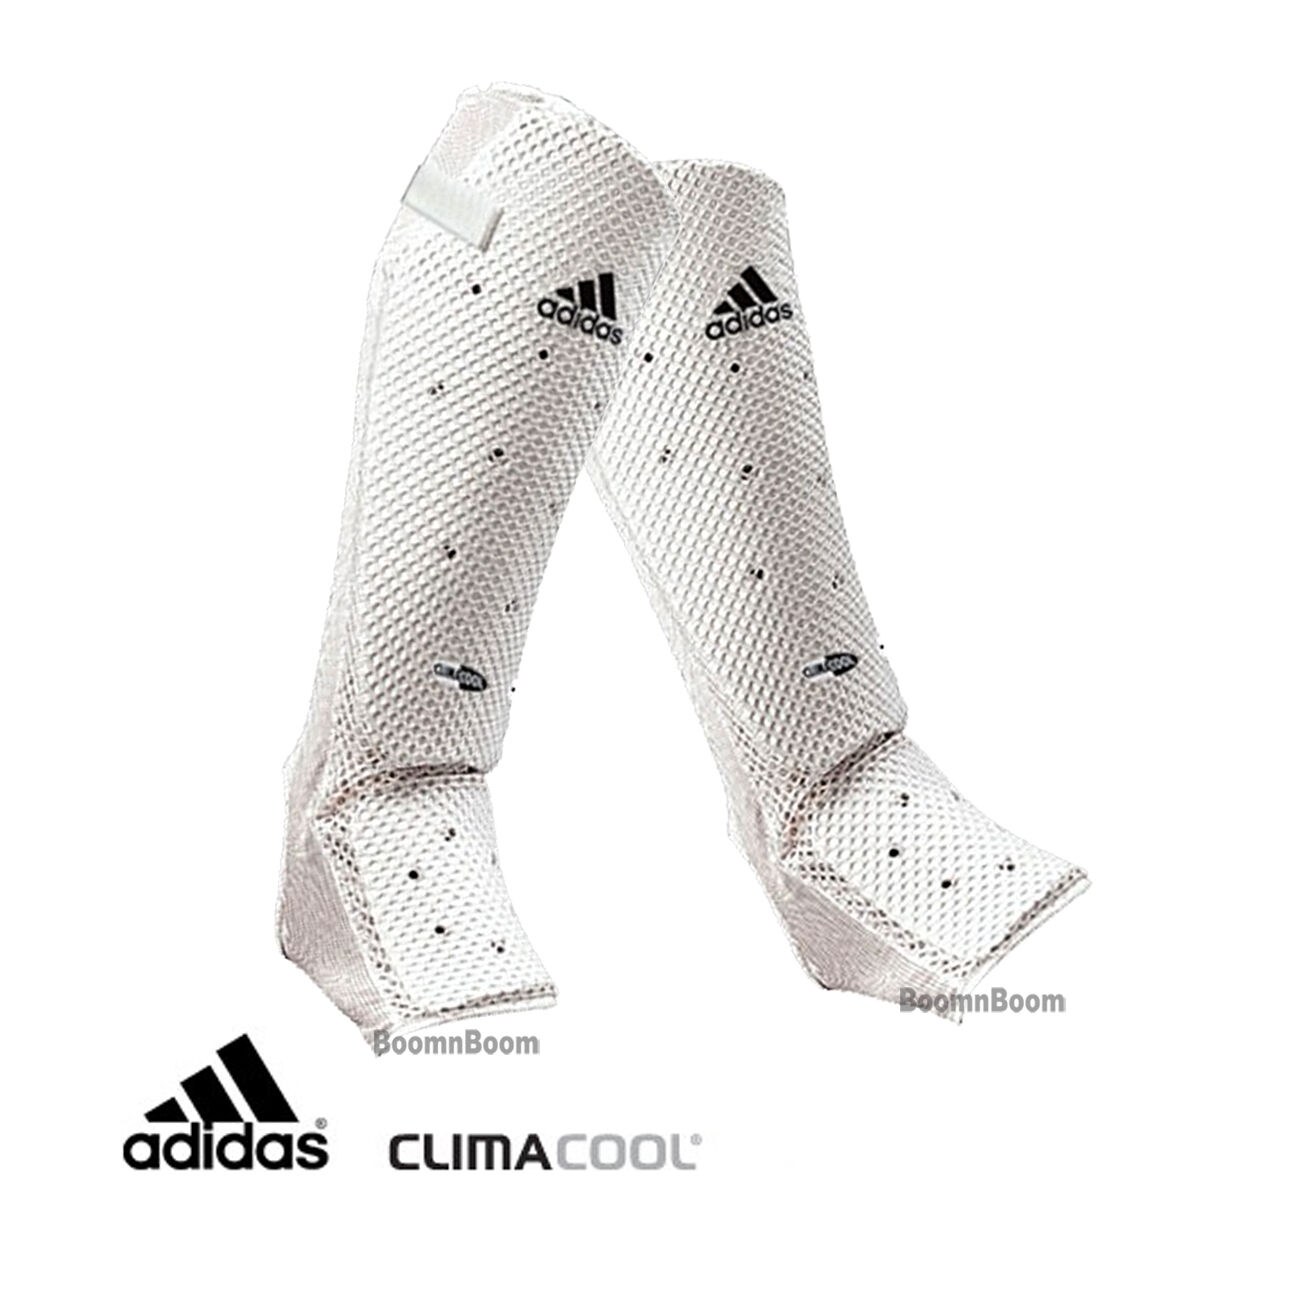 New adidas Karate  Taekwondo Microlight Mesh Shin Instep Guard Predector Sparring  save 50%-75%off